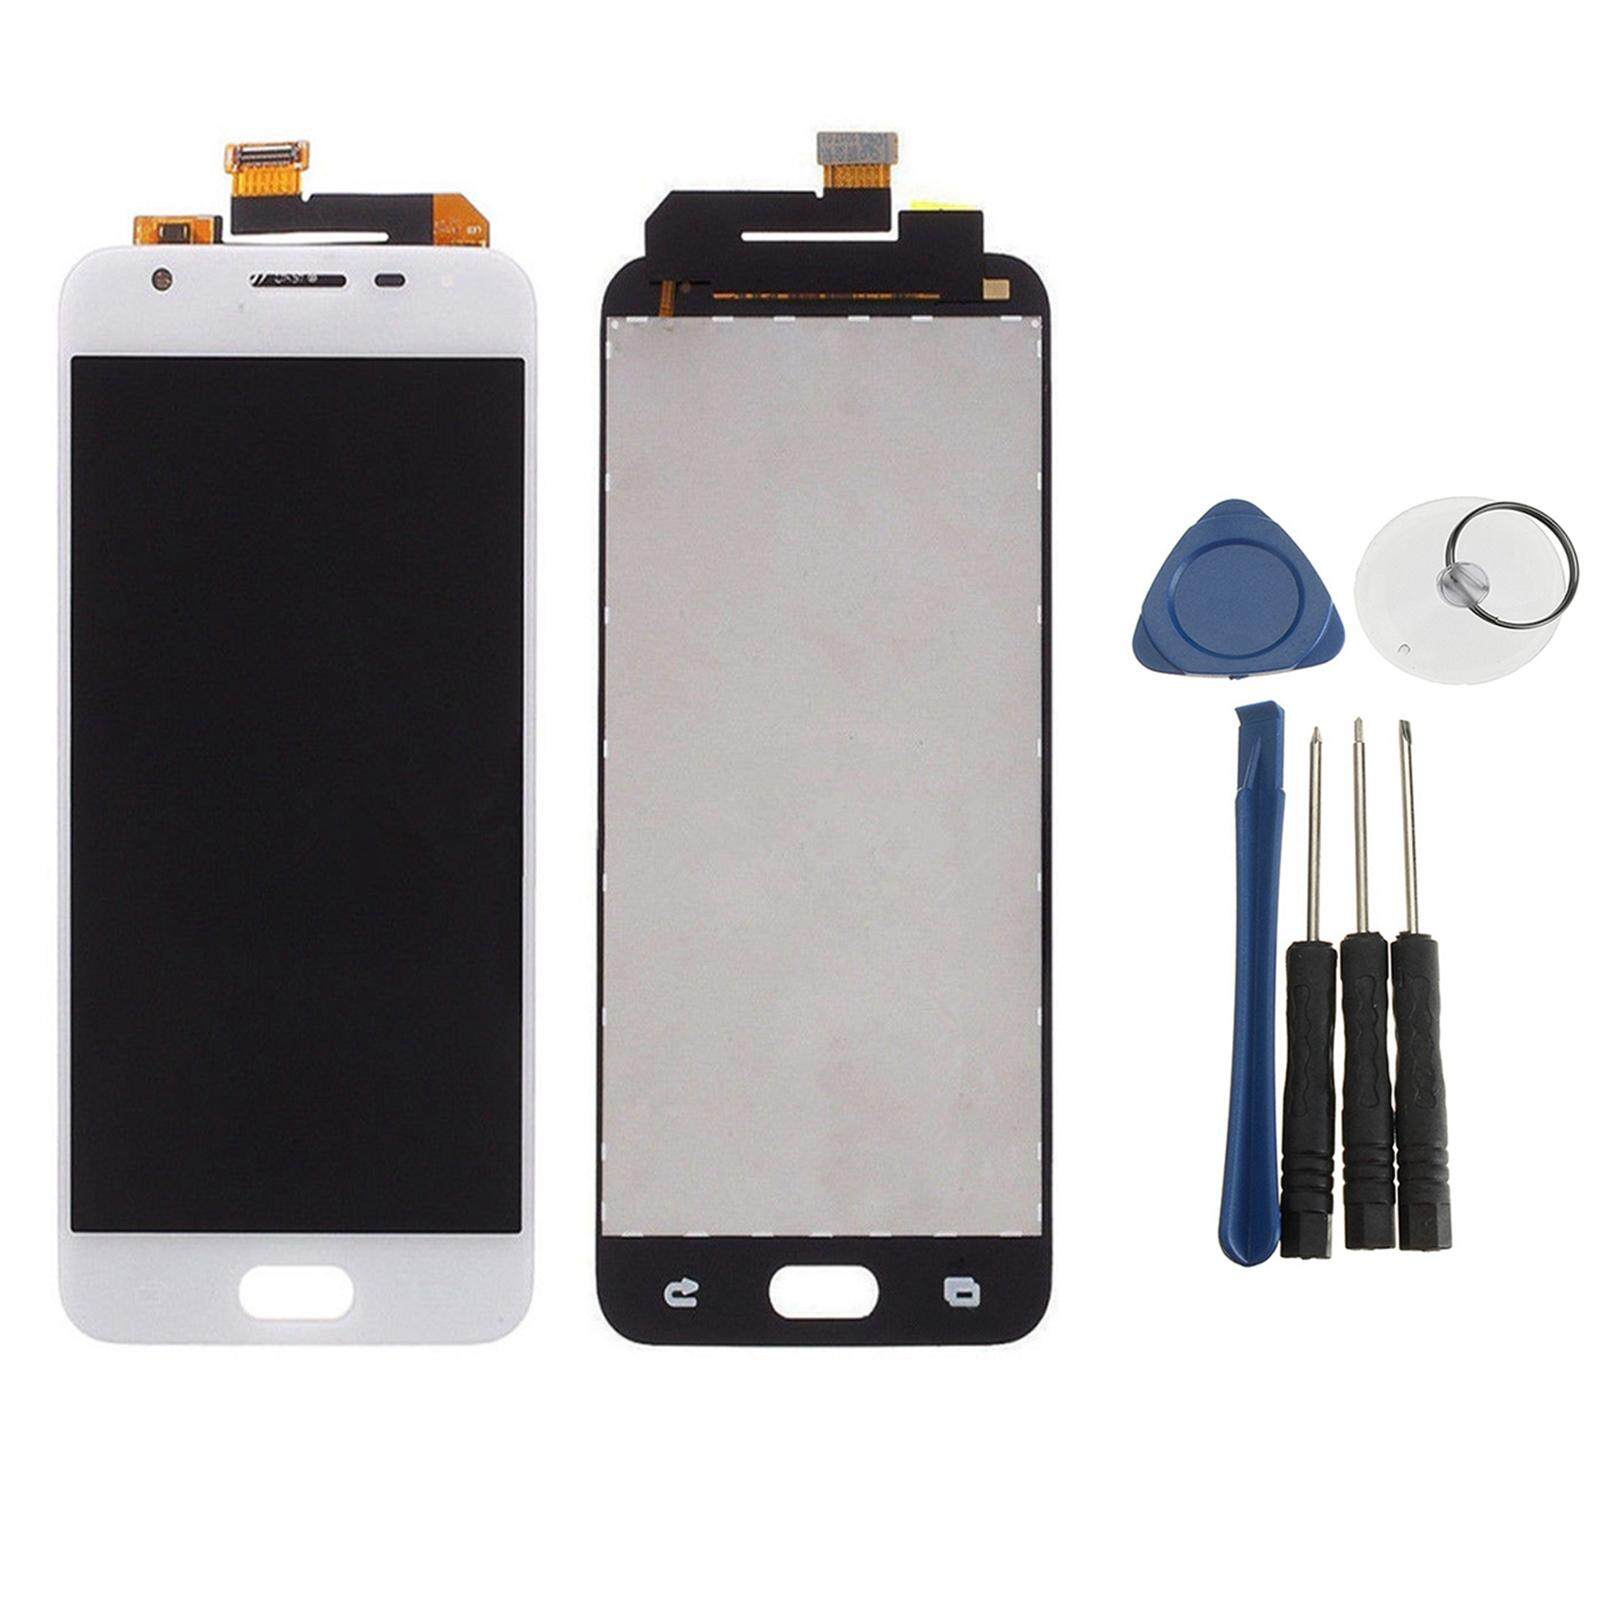 LCD Display Touch Screen Digitizer Assembly for Samsung Galaxy J5 Prime G570 G570F/S/